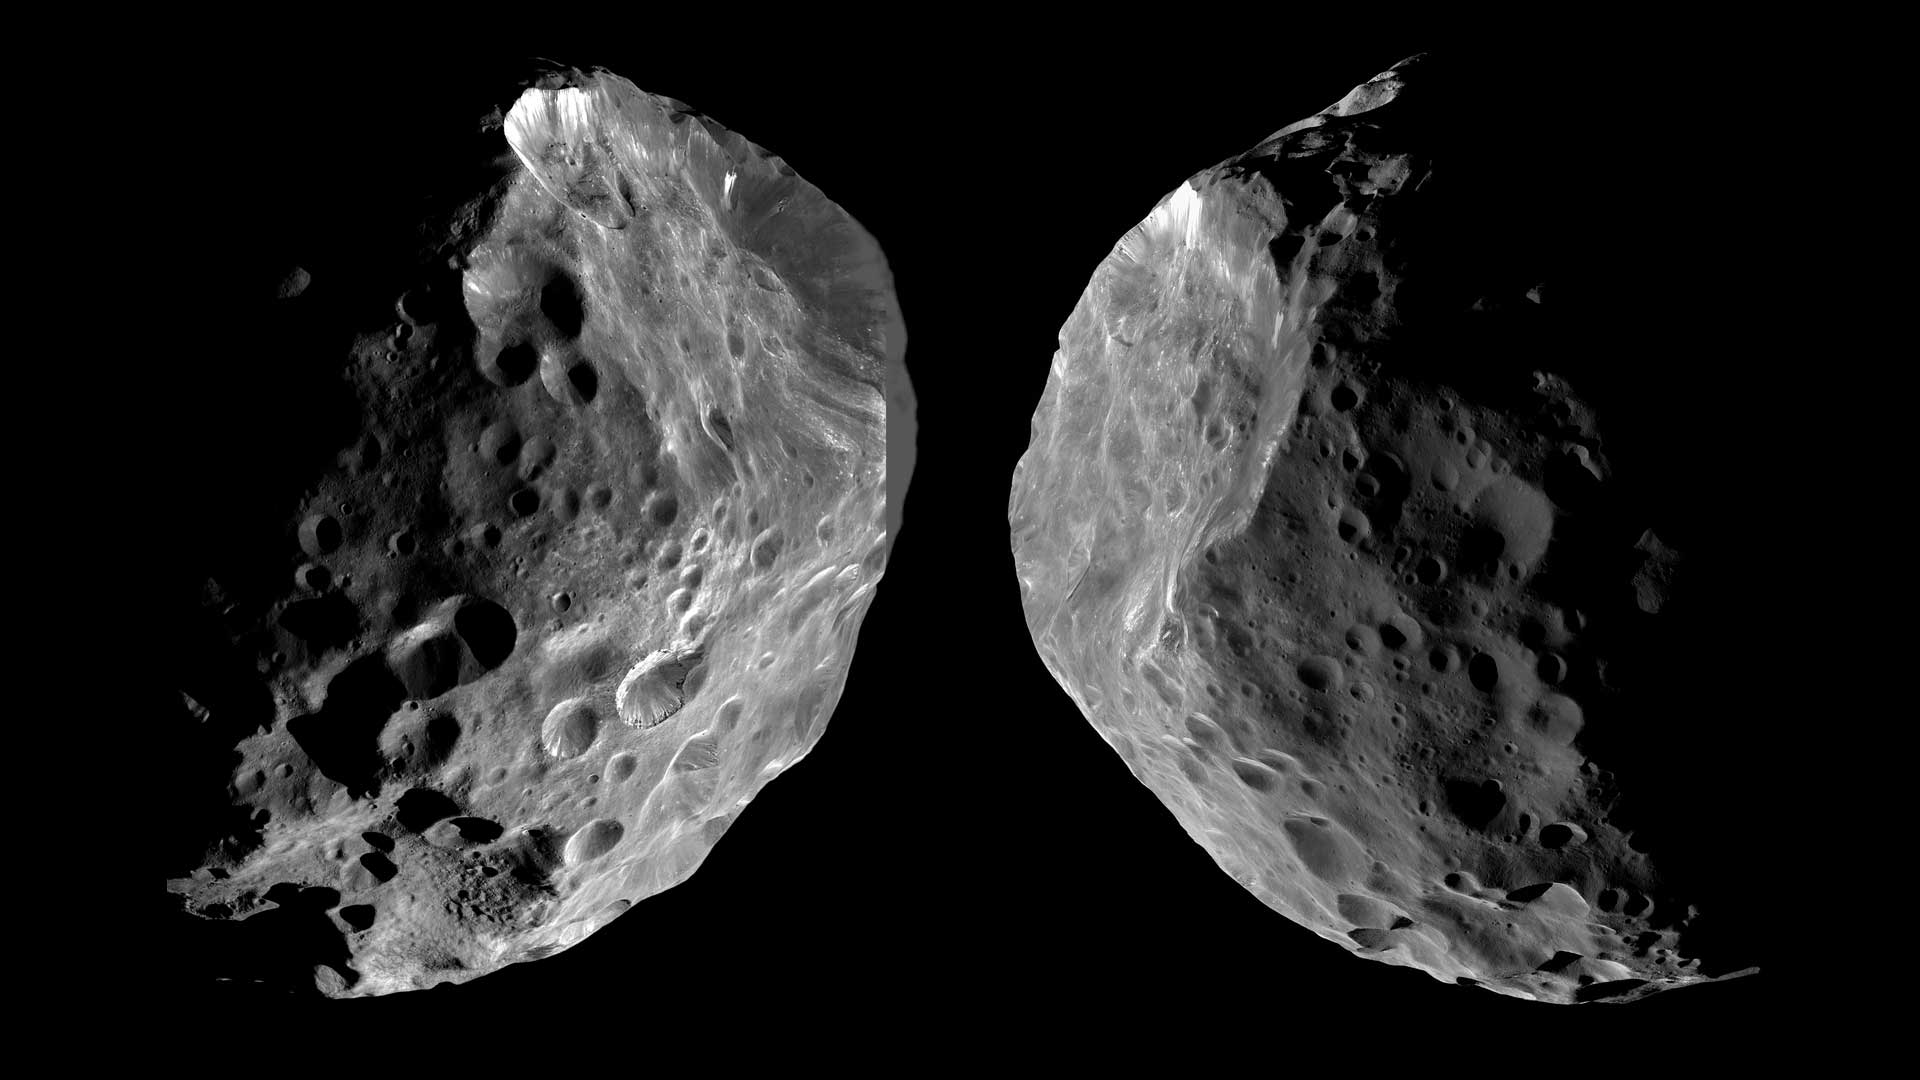 Cassini's view on approach to Phoebe (left) and departure (right). The dark, roughly spherical object is roughly 16 times smaller than Earth's moon.